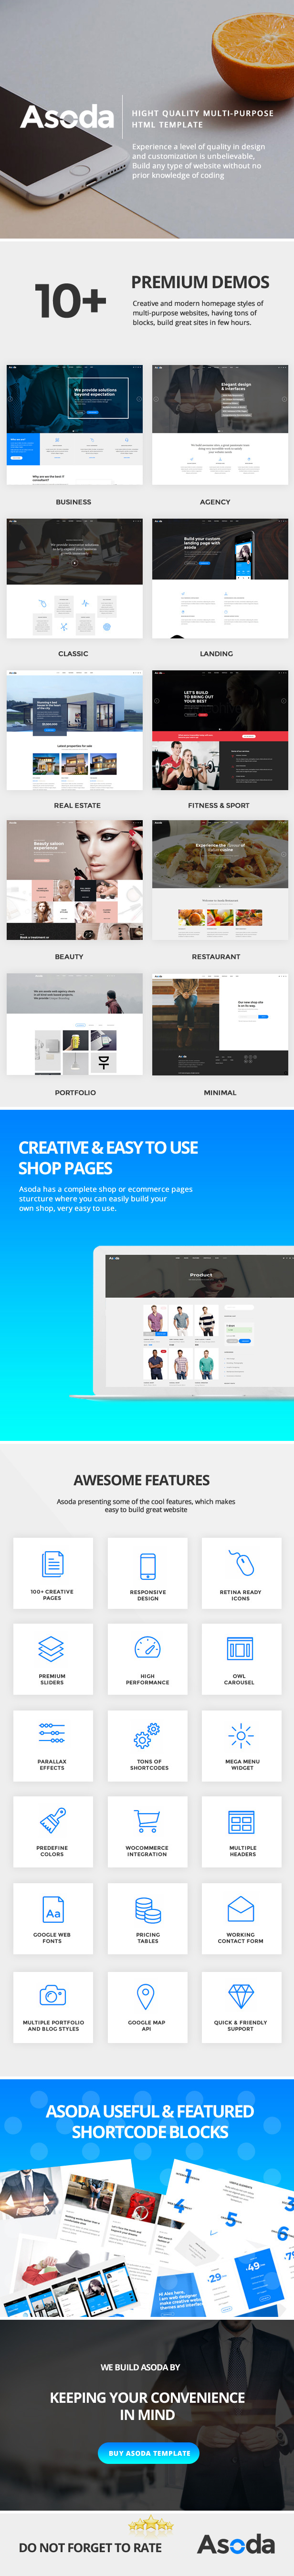 Asoda - Multi-Purpose Responsive Website Template - 2